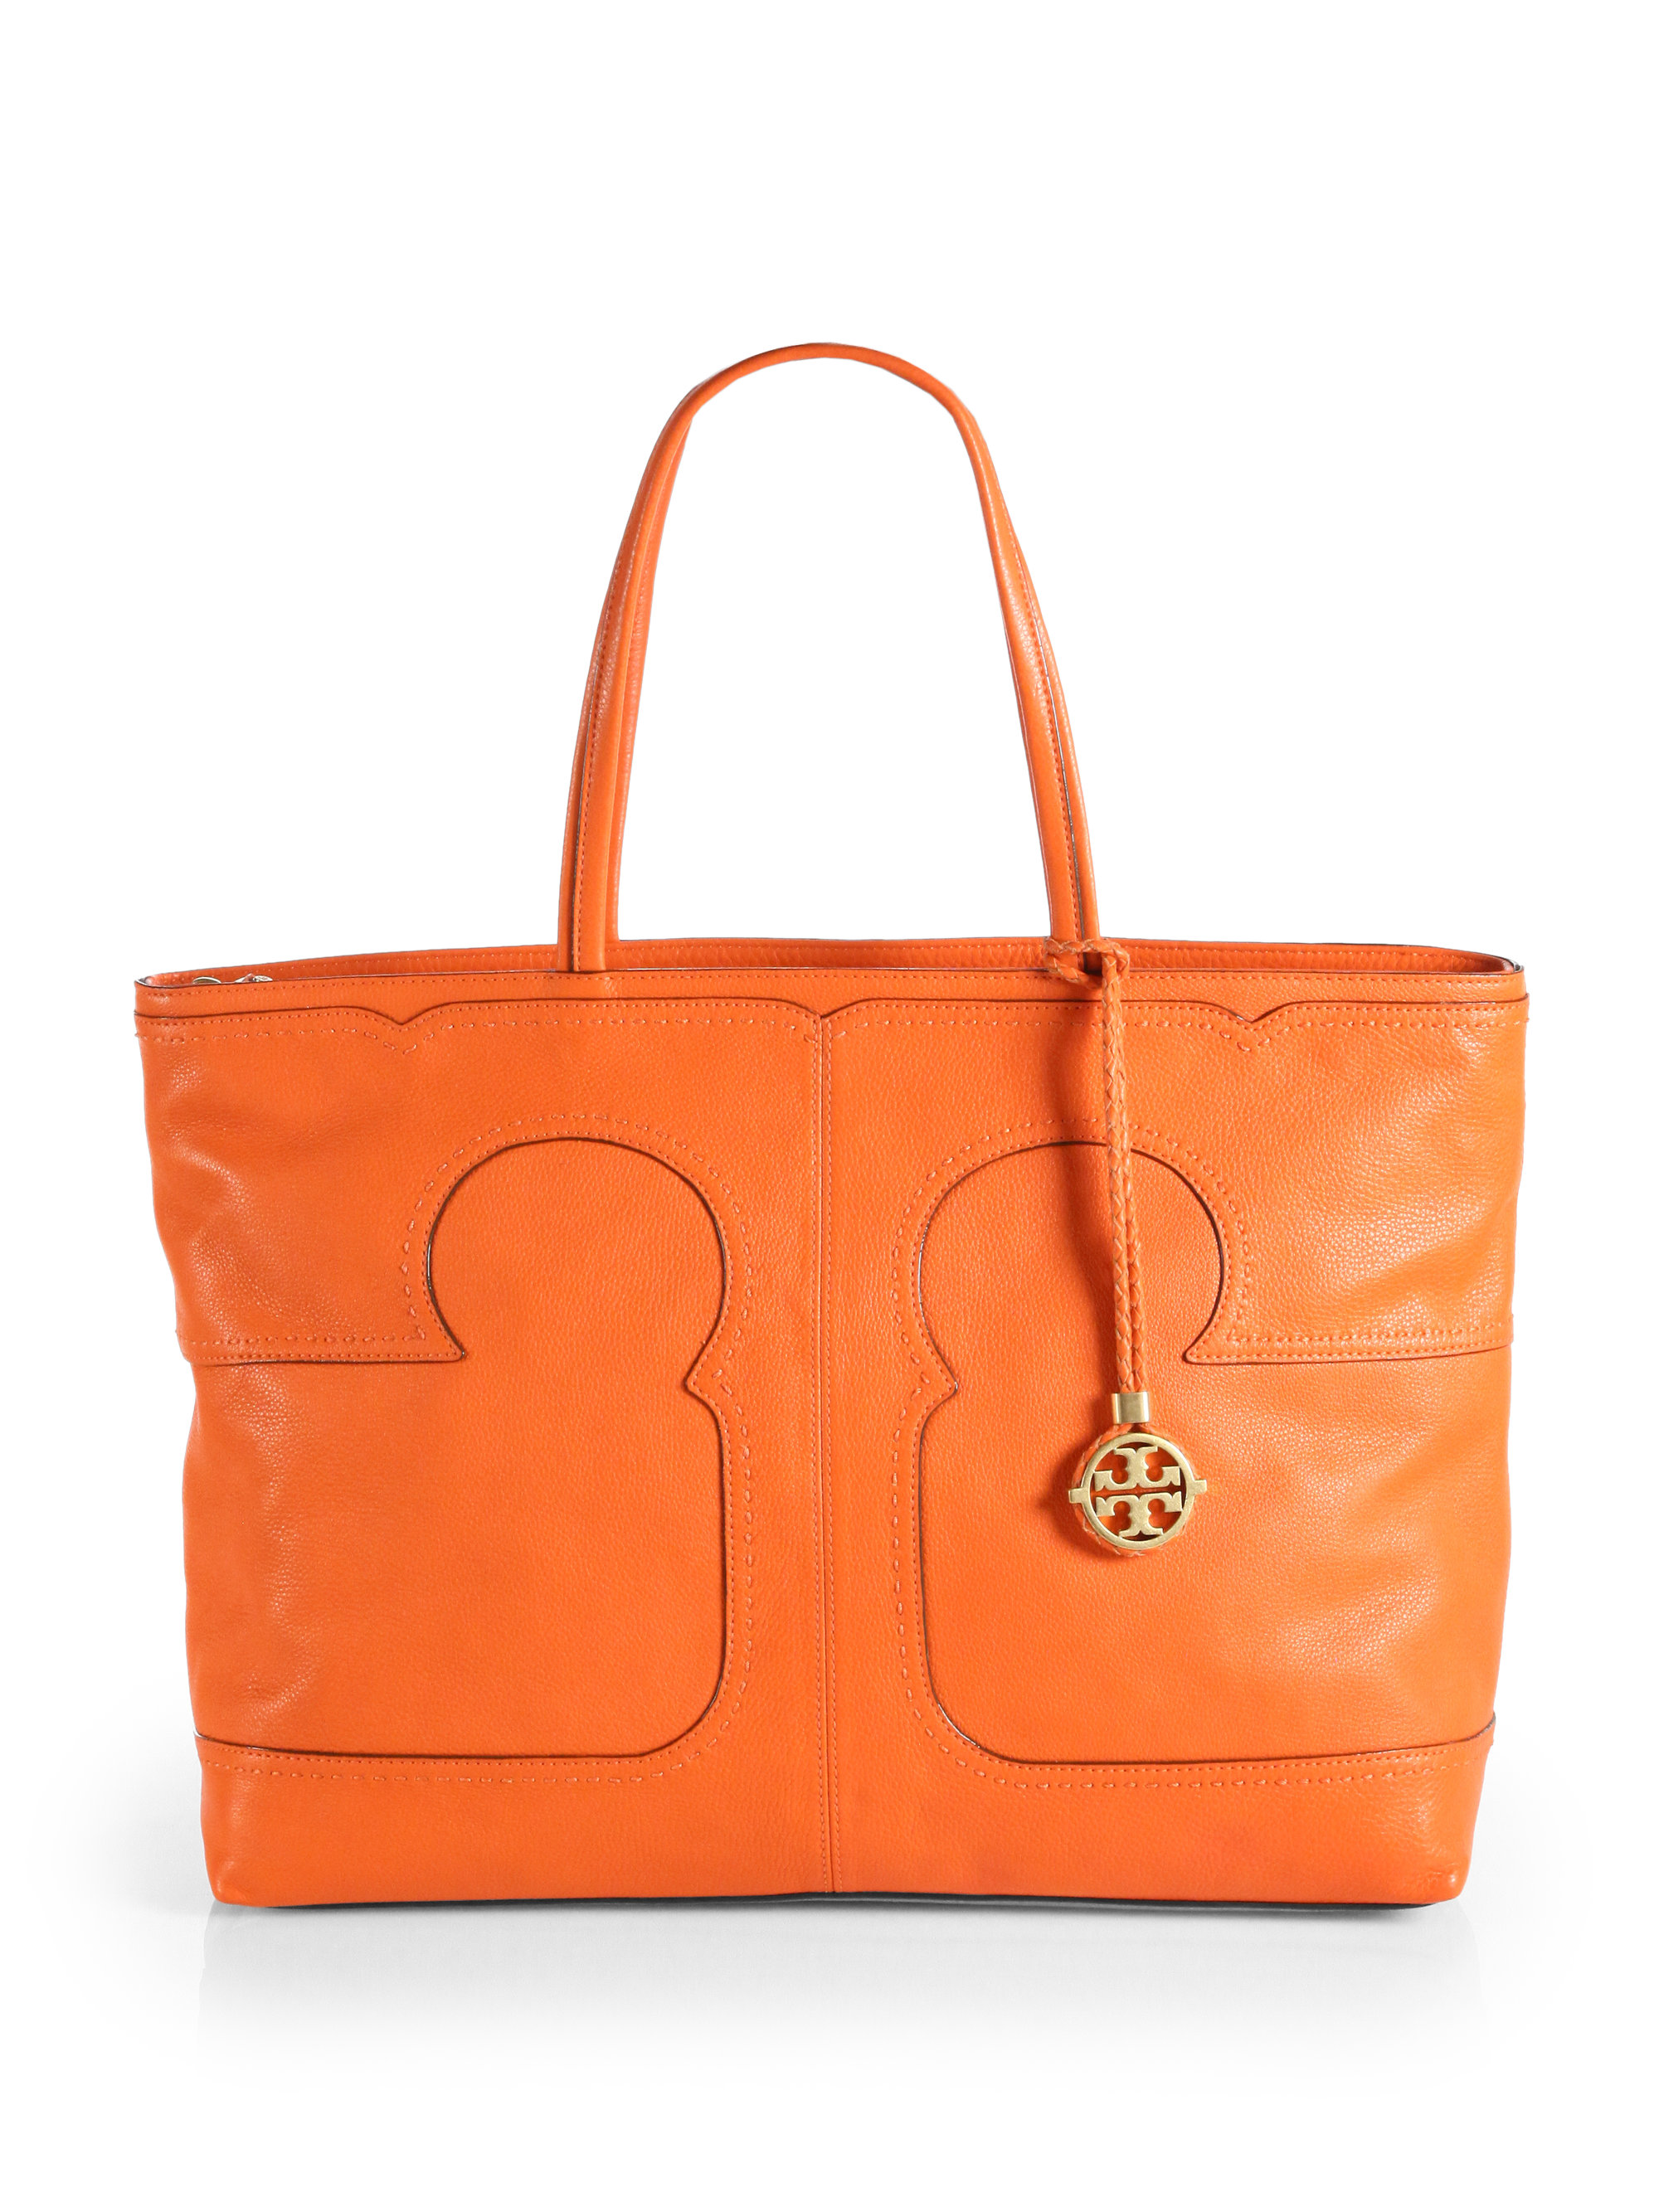 Tory burch Amalie Logo Tote in Orange | Lyst